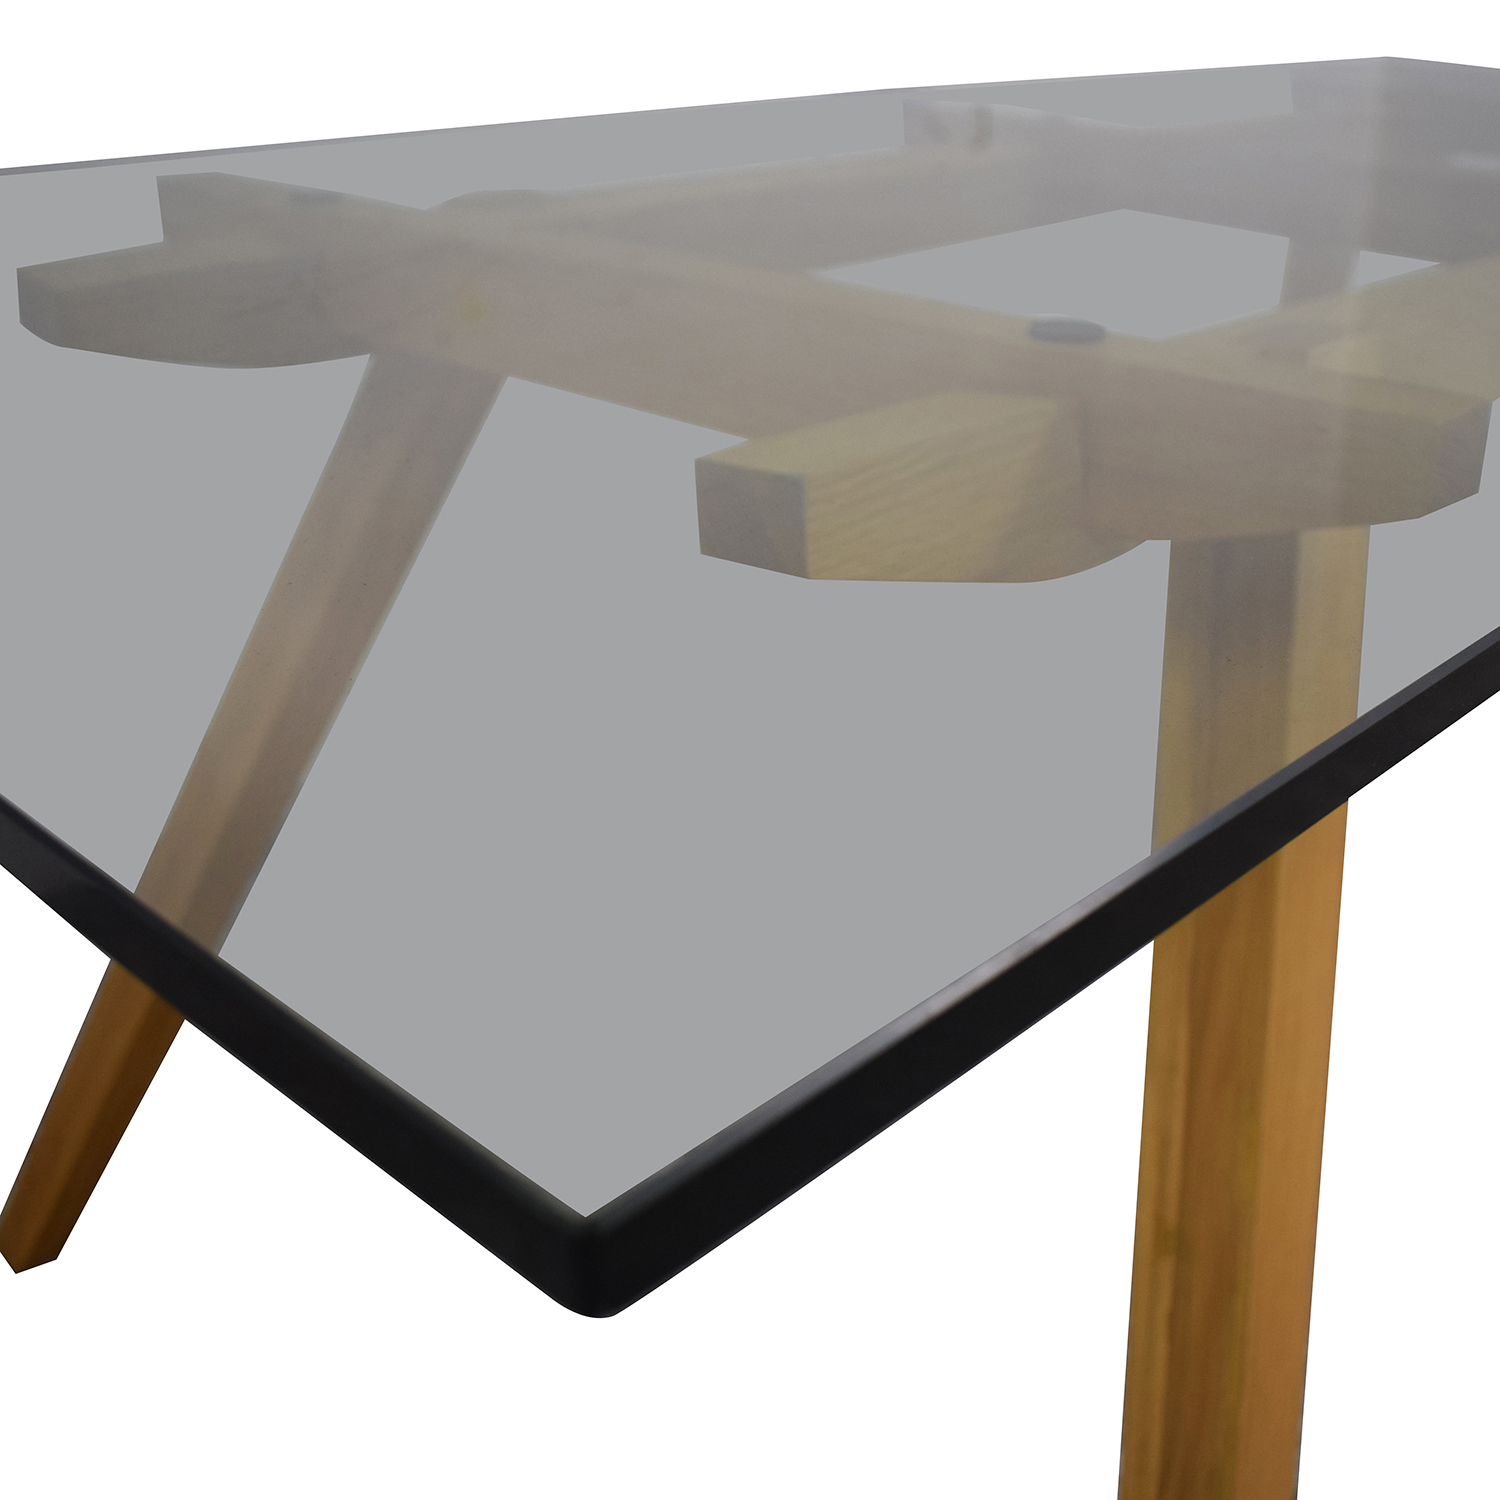 Organic Modernism Organic Modernism Recoleta Glass and Wood Dining Table coupon